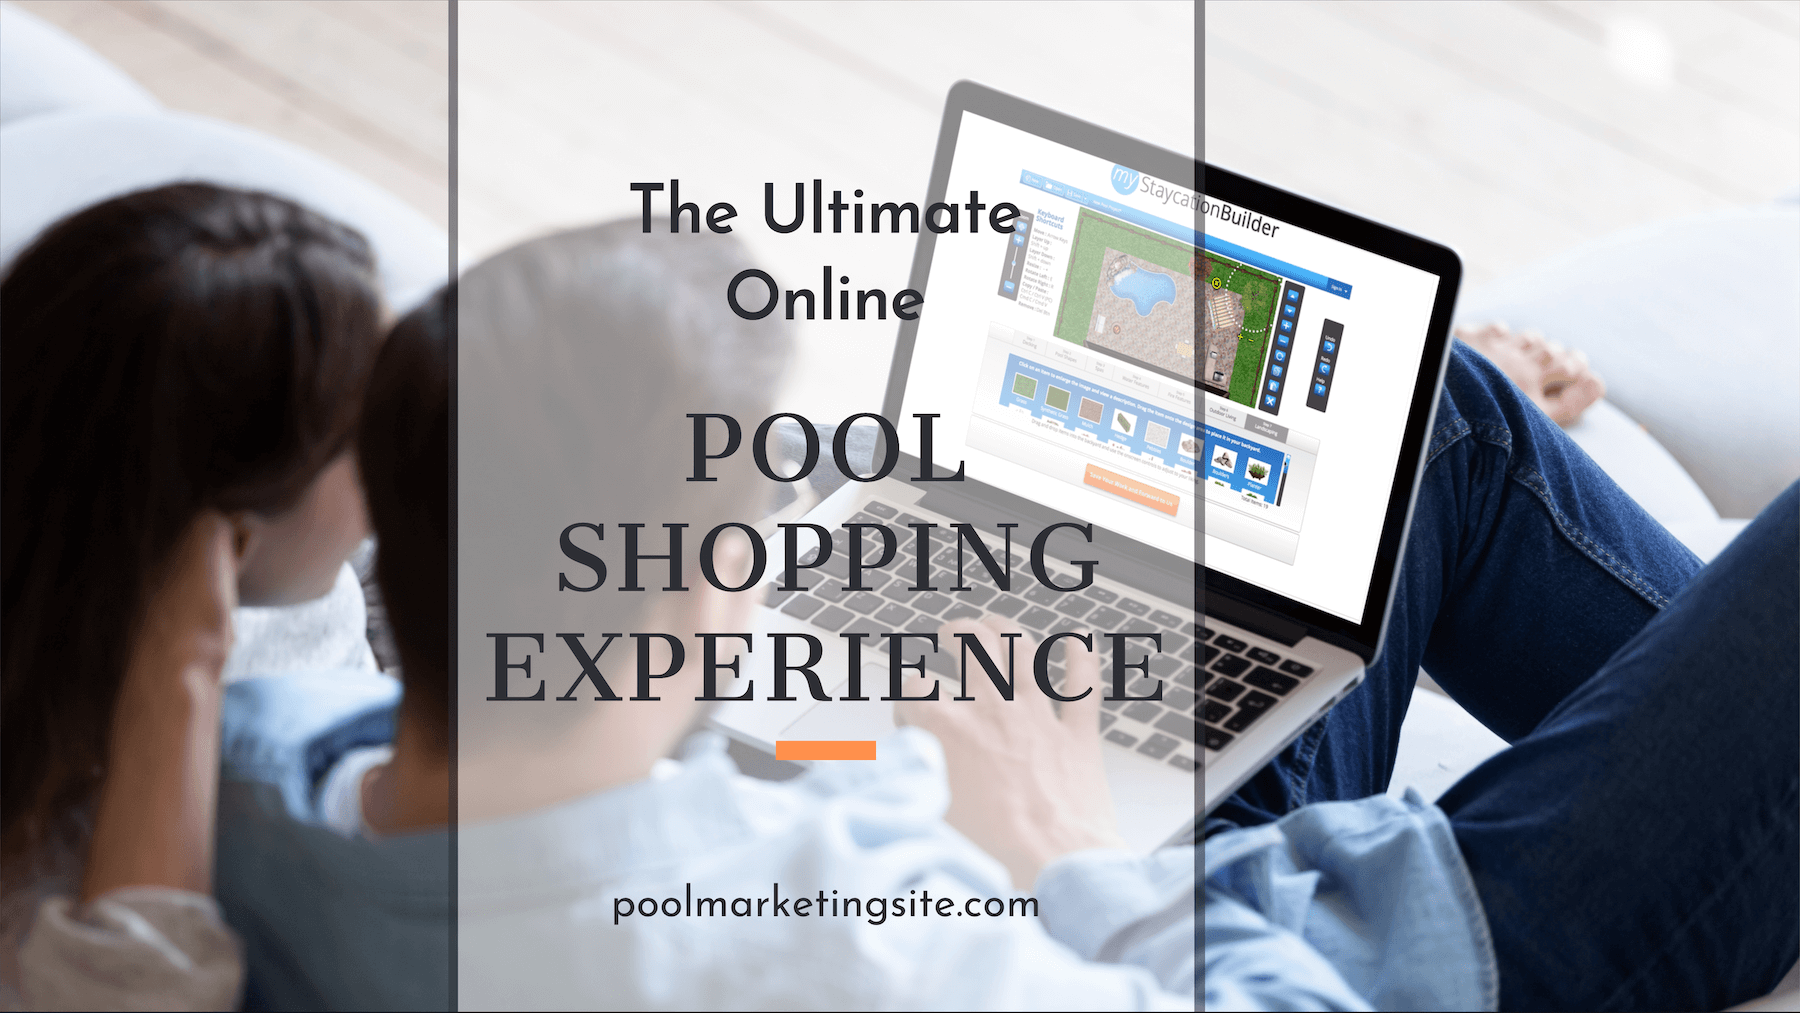 The Ultimate Online Pool Shopping Experience